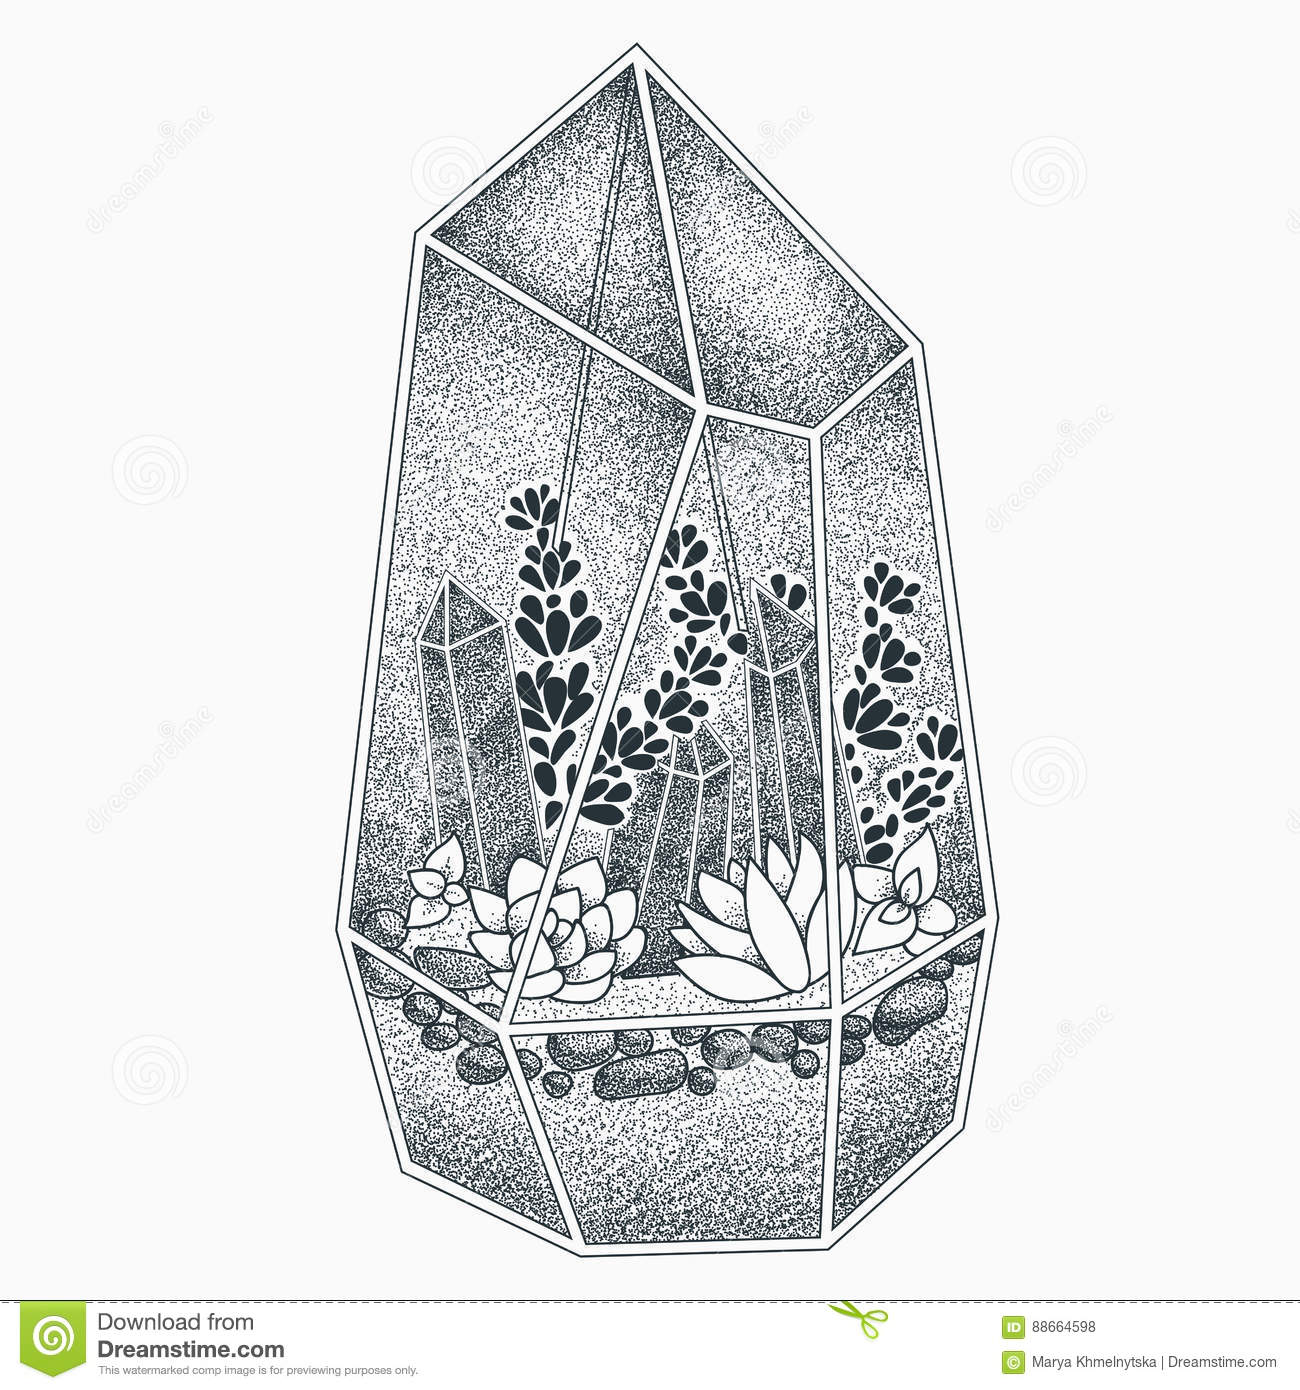 Terrarium Tattoo Design Stock Vector Illustration Of Element 88664598